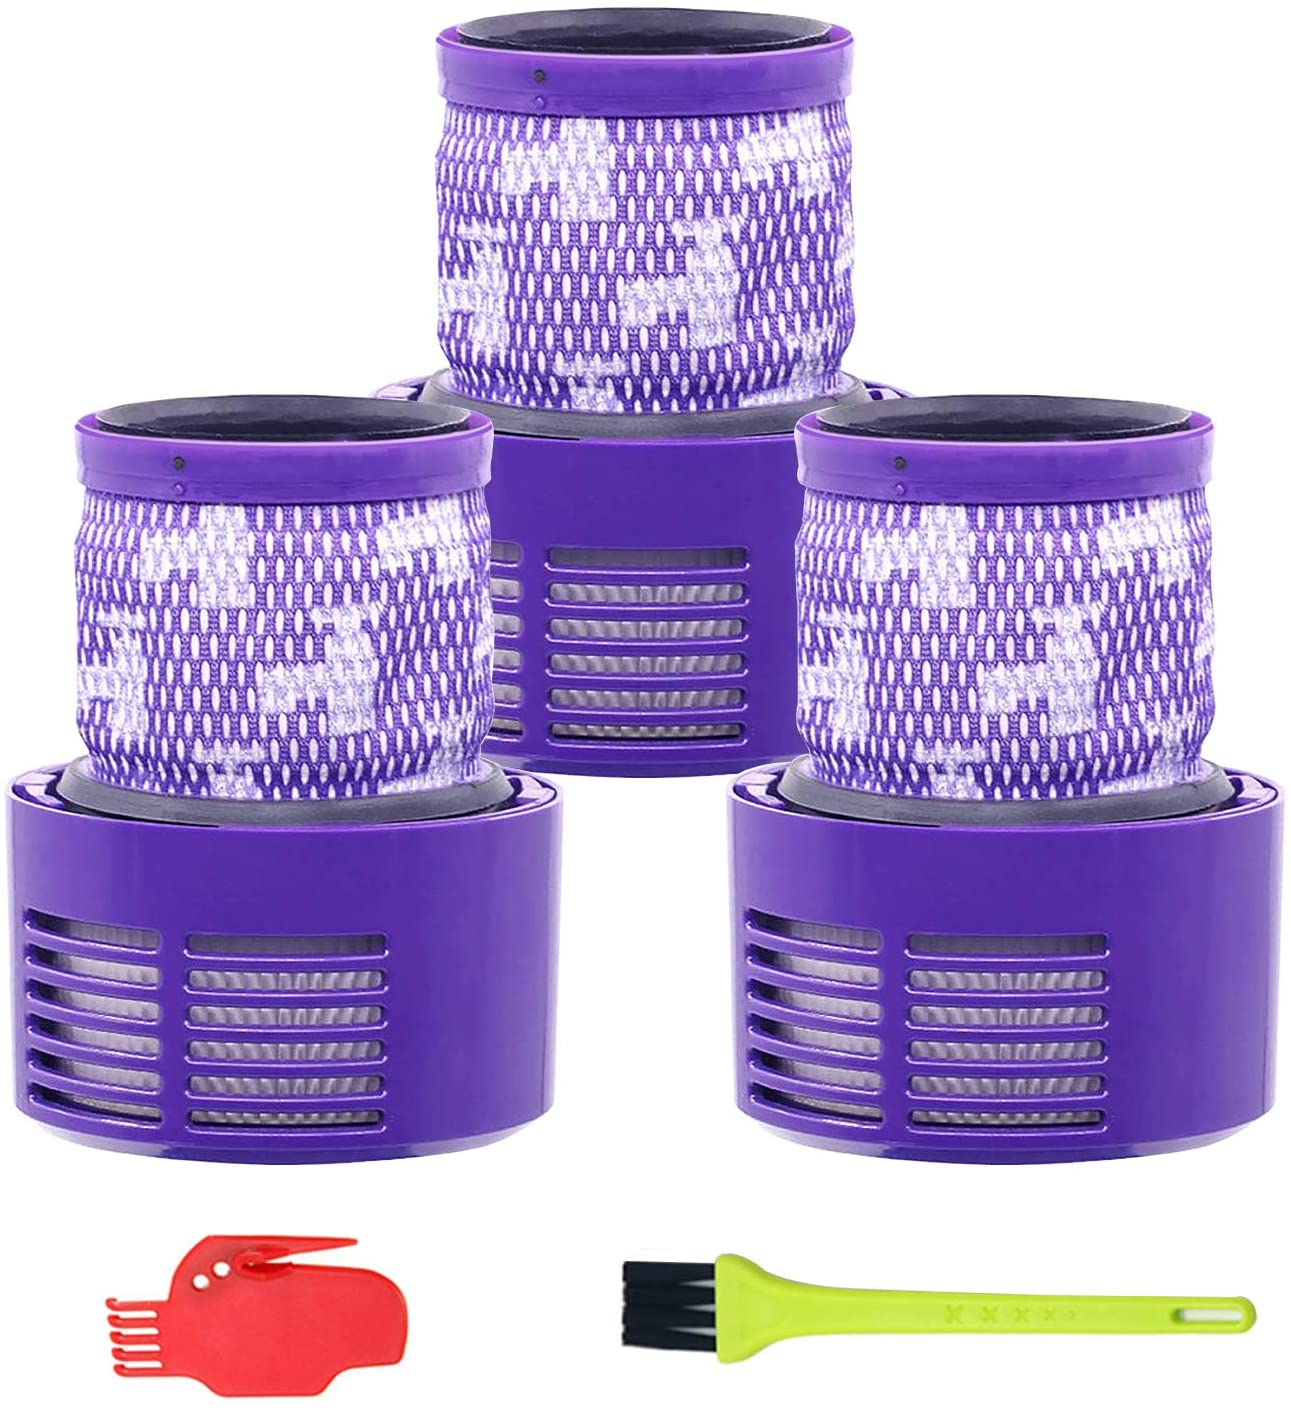 ilovelife 3 Pack Vacuum Replacement Filter for Dyson V10 SV12, Compatible with Dyson Part No. 969082-01 Filter